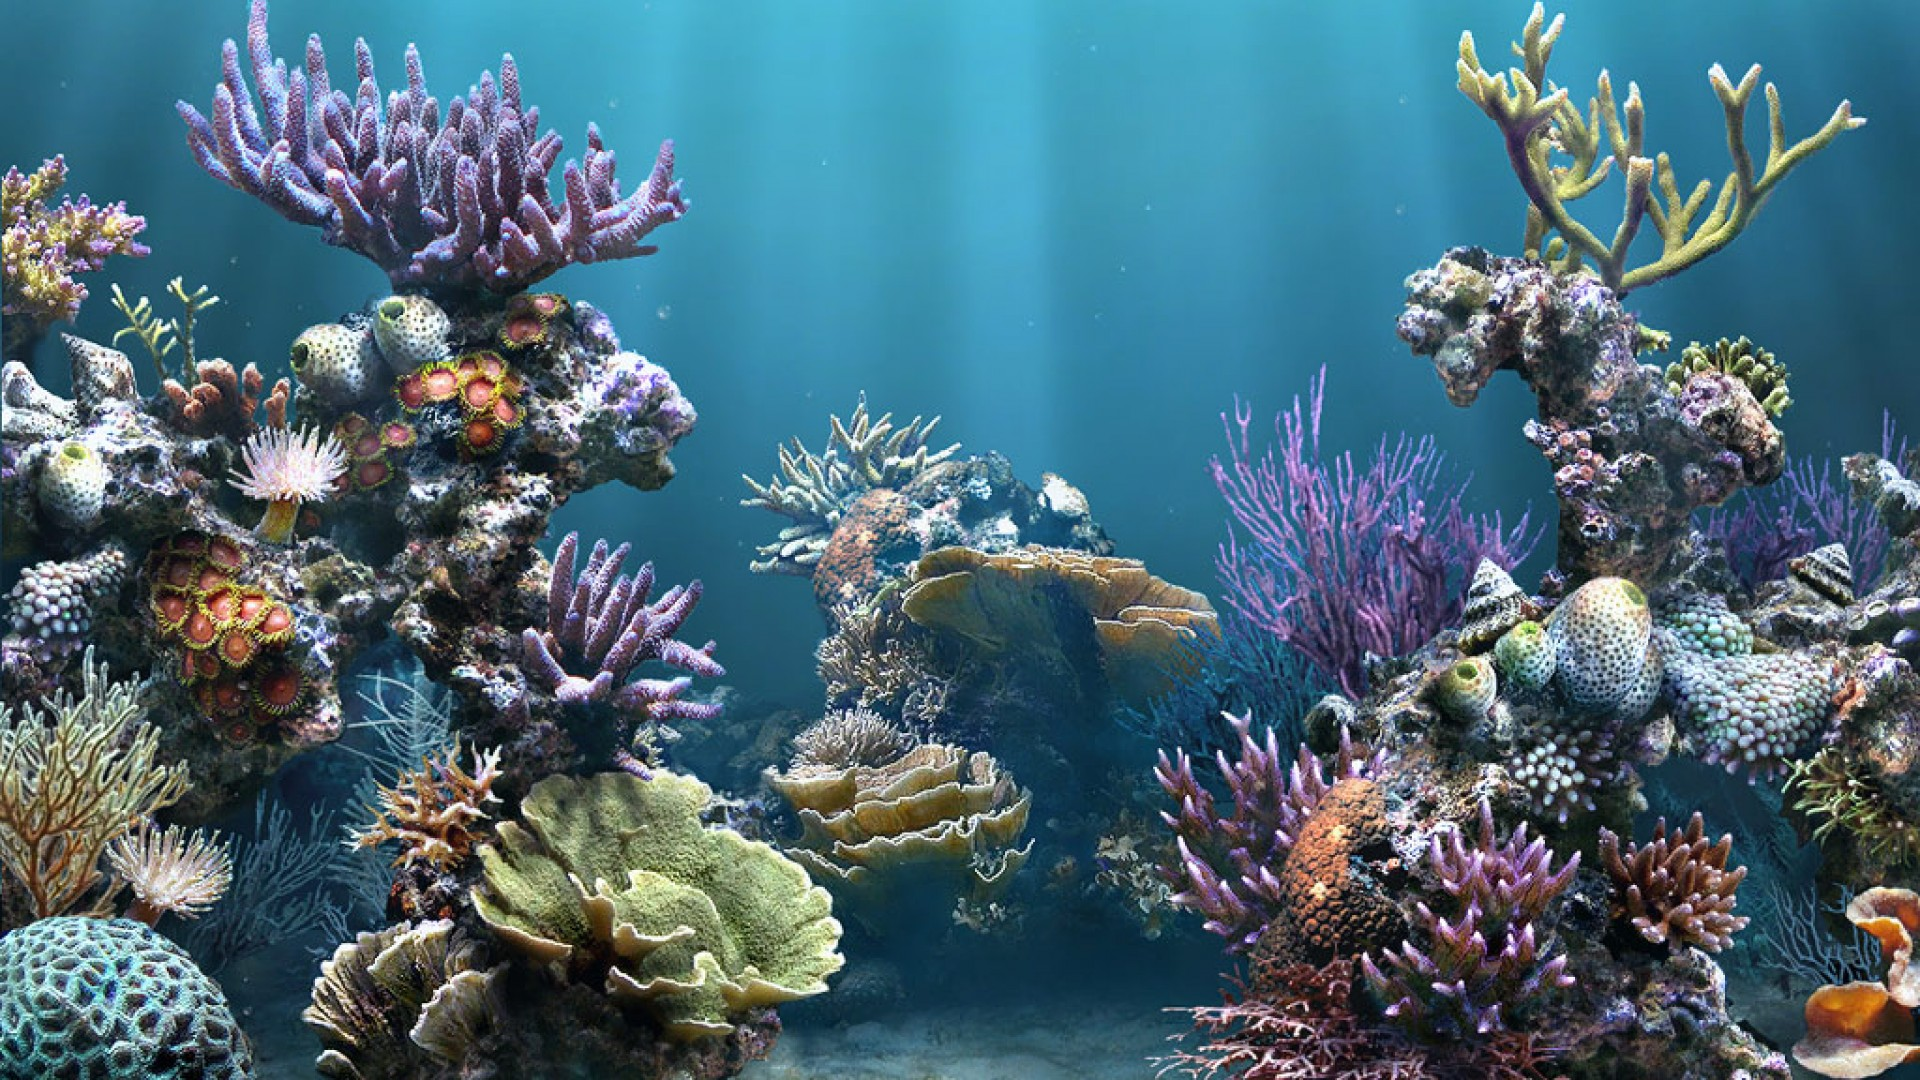 HD Aquarium Backgrounds 1080p